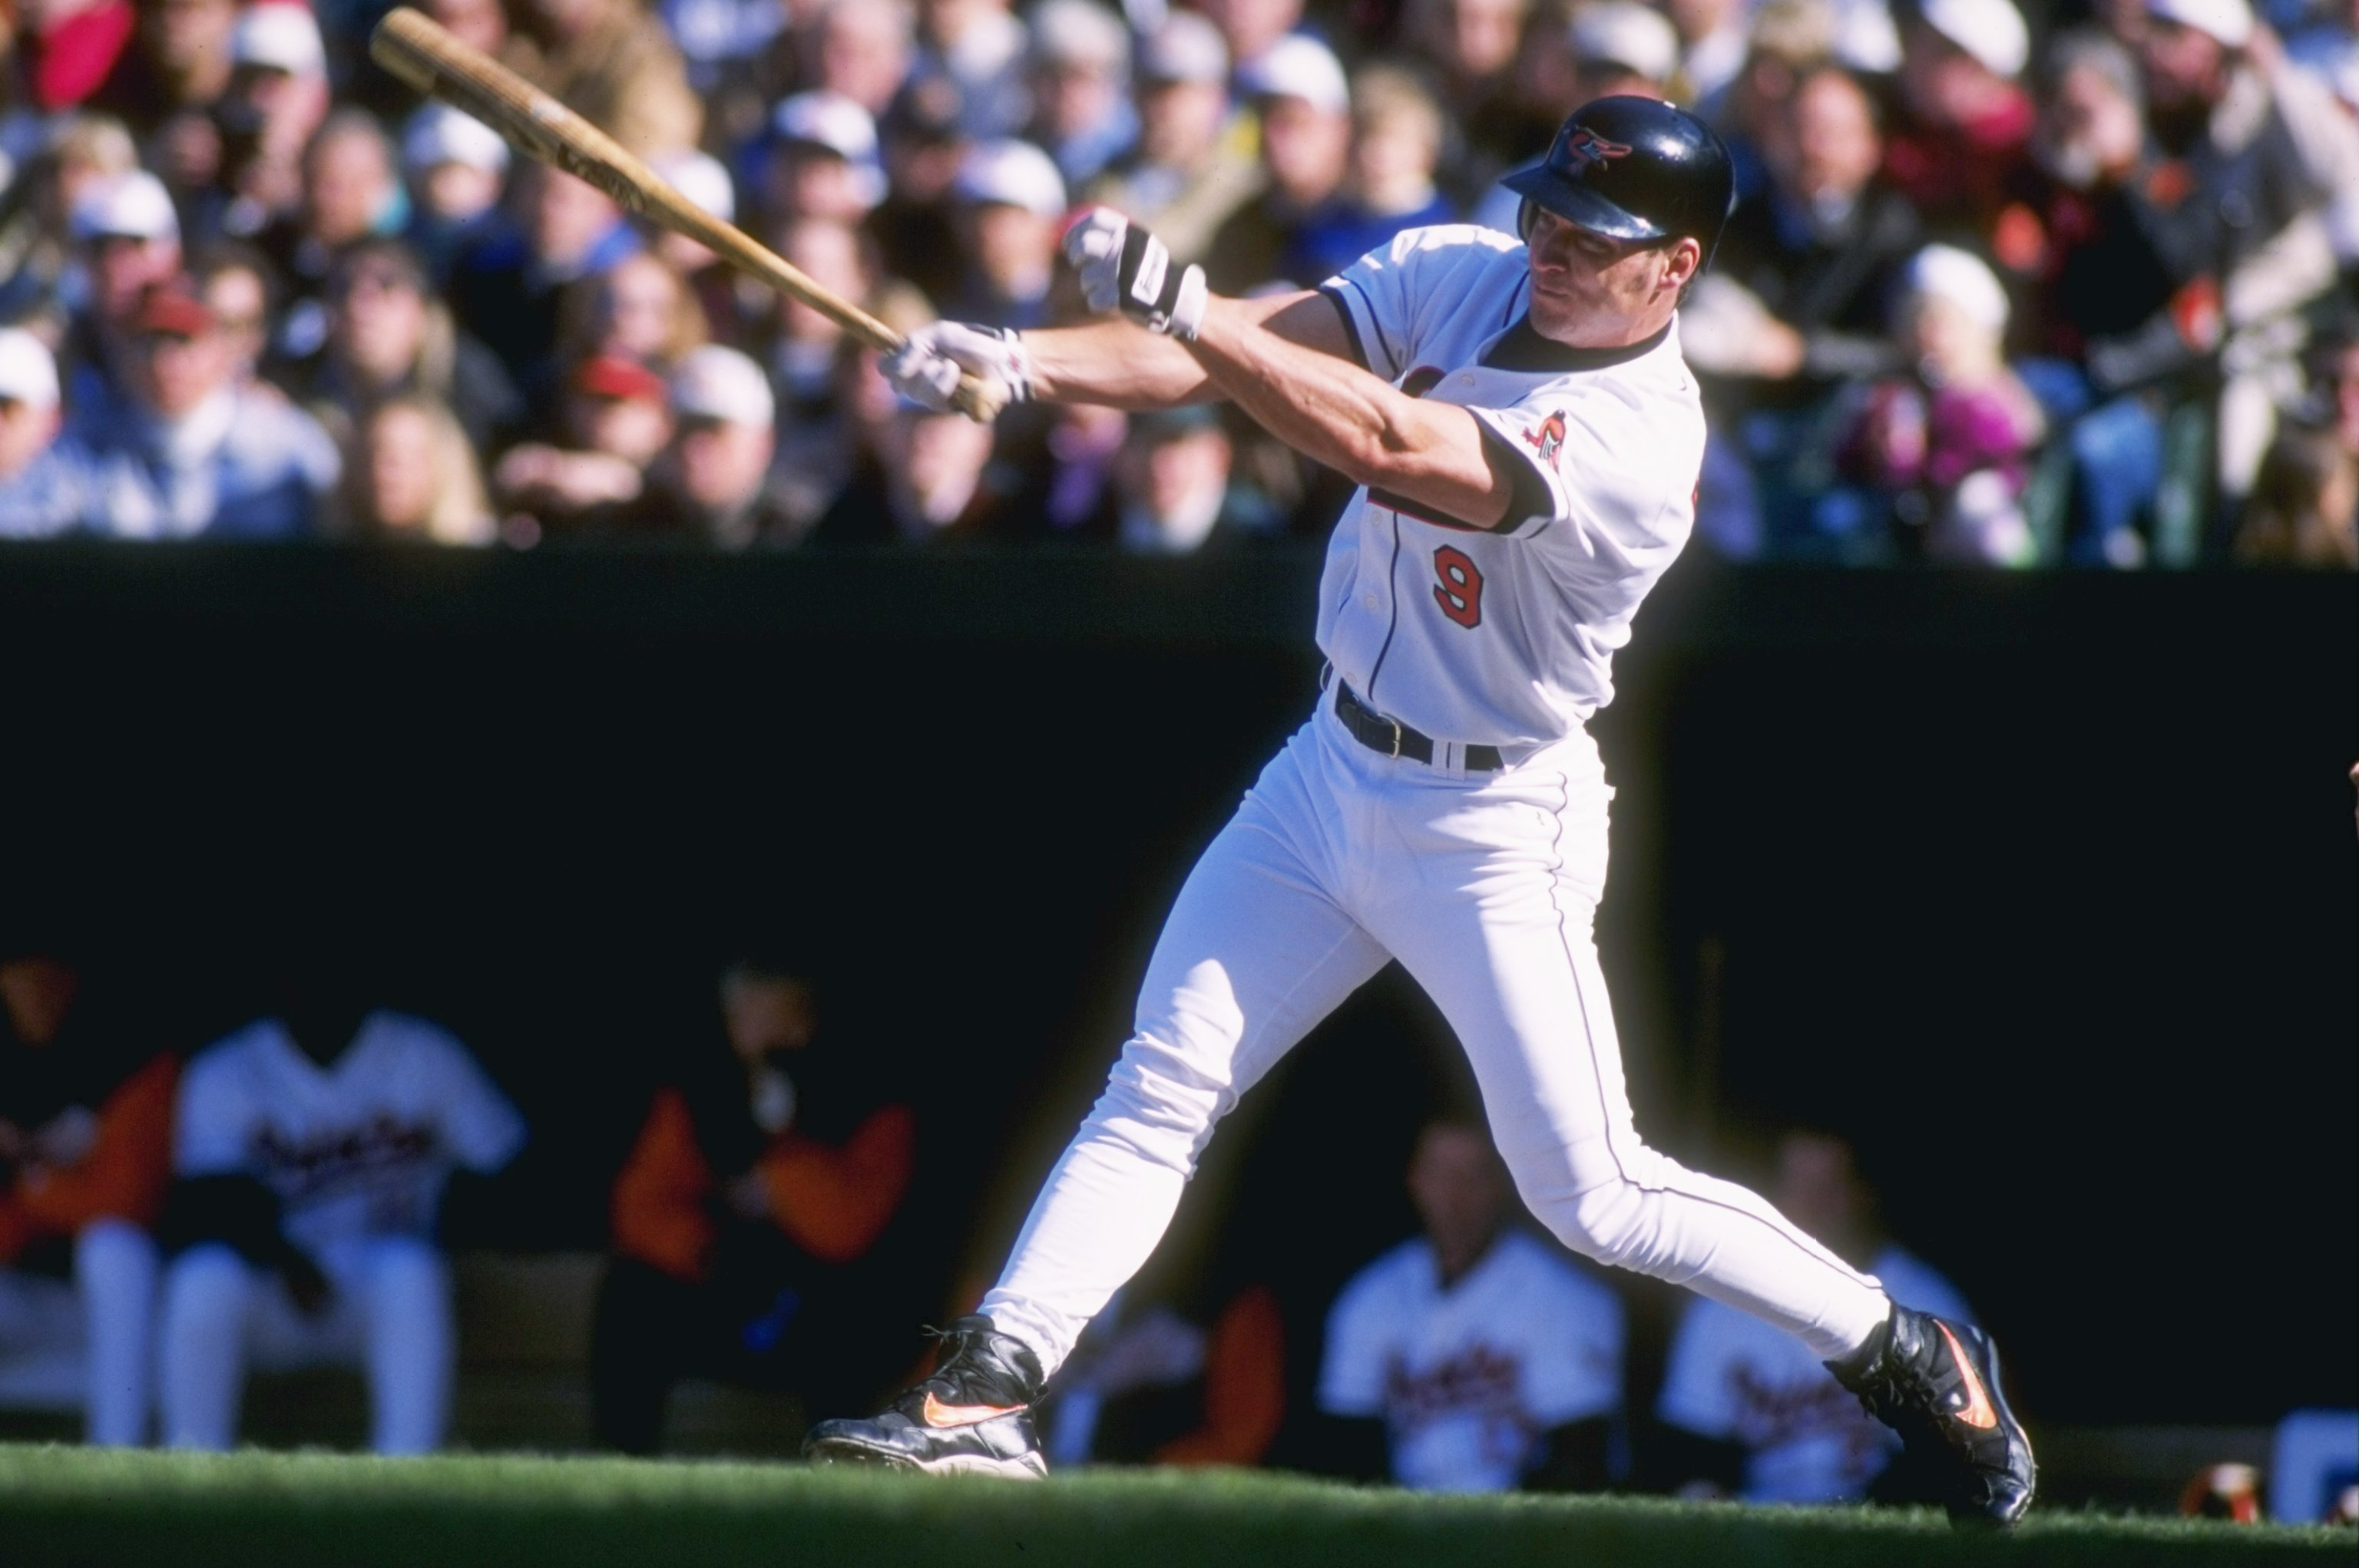 2 Apr 1996:  Centerfielder Brady Anderson of the Baltimore Orioles stares into the outfield as he follows through on a swing following a hit in the Orioles 4-2 victory over the Kansas City Royals in Oriole Park at Camden Yards in Baltimore, Maryland.  Man